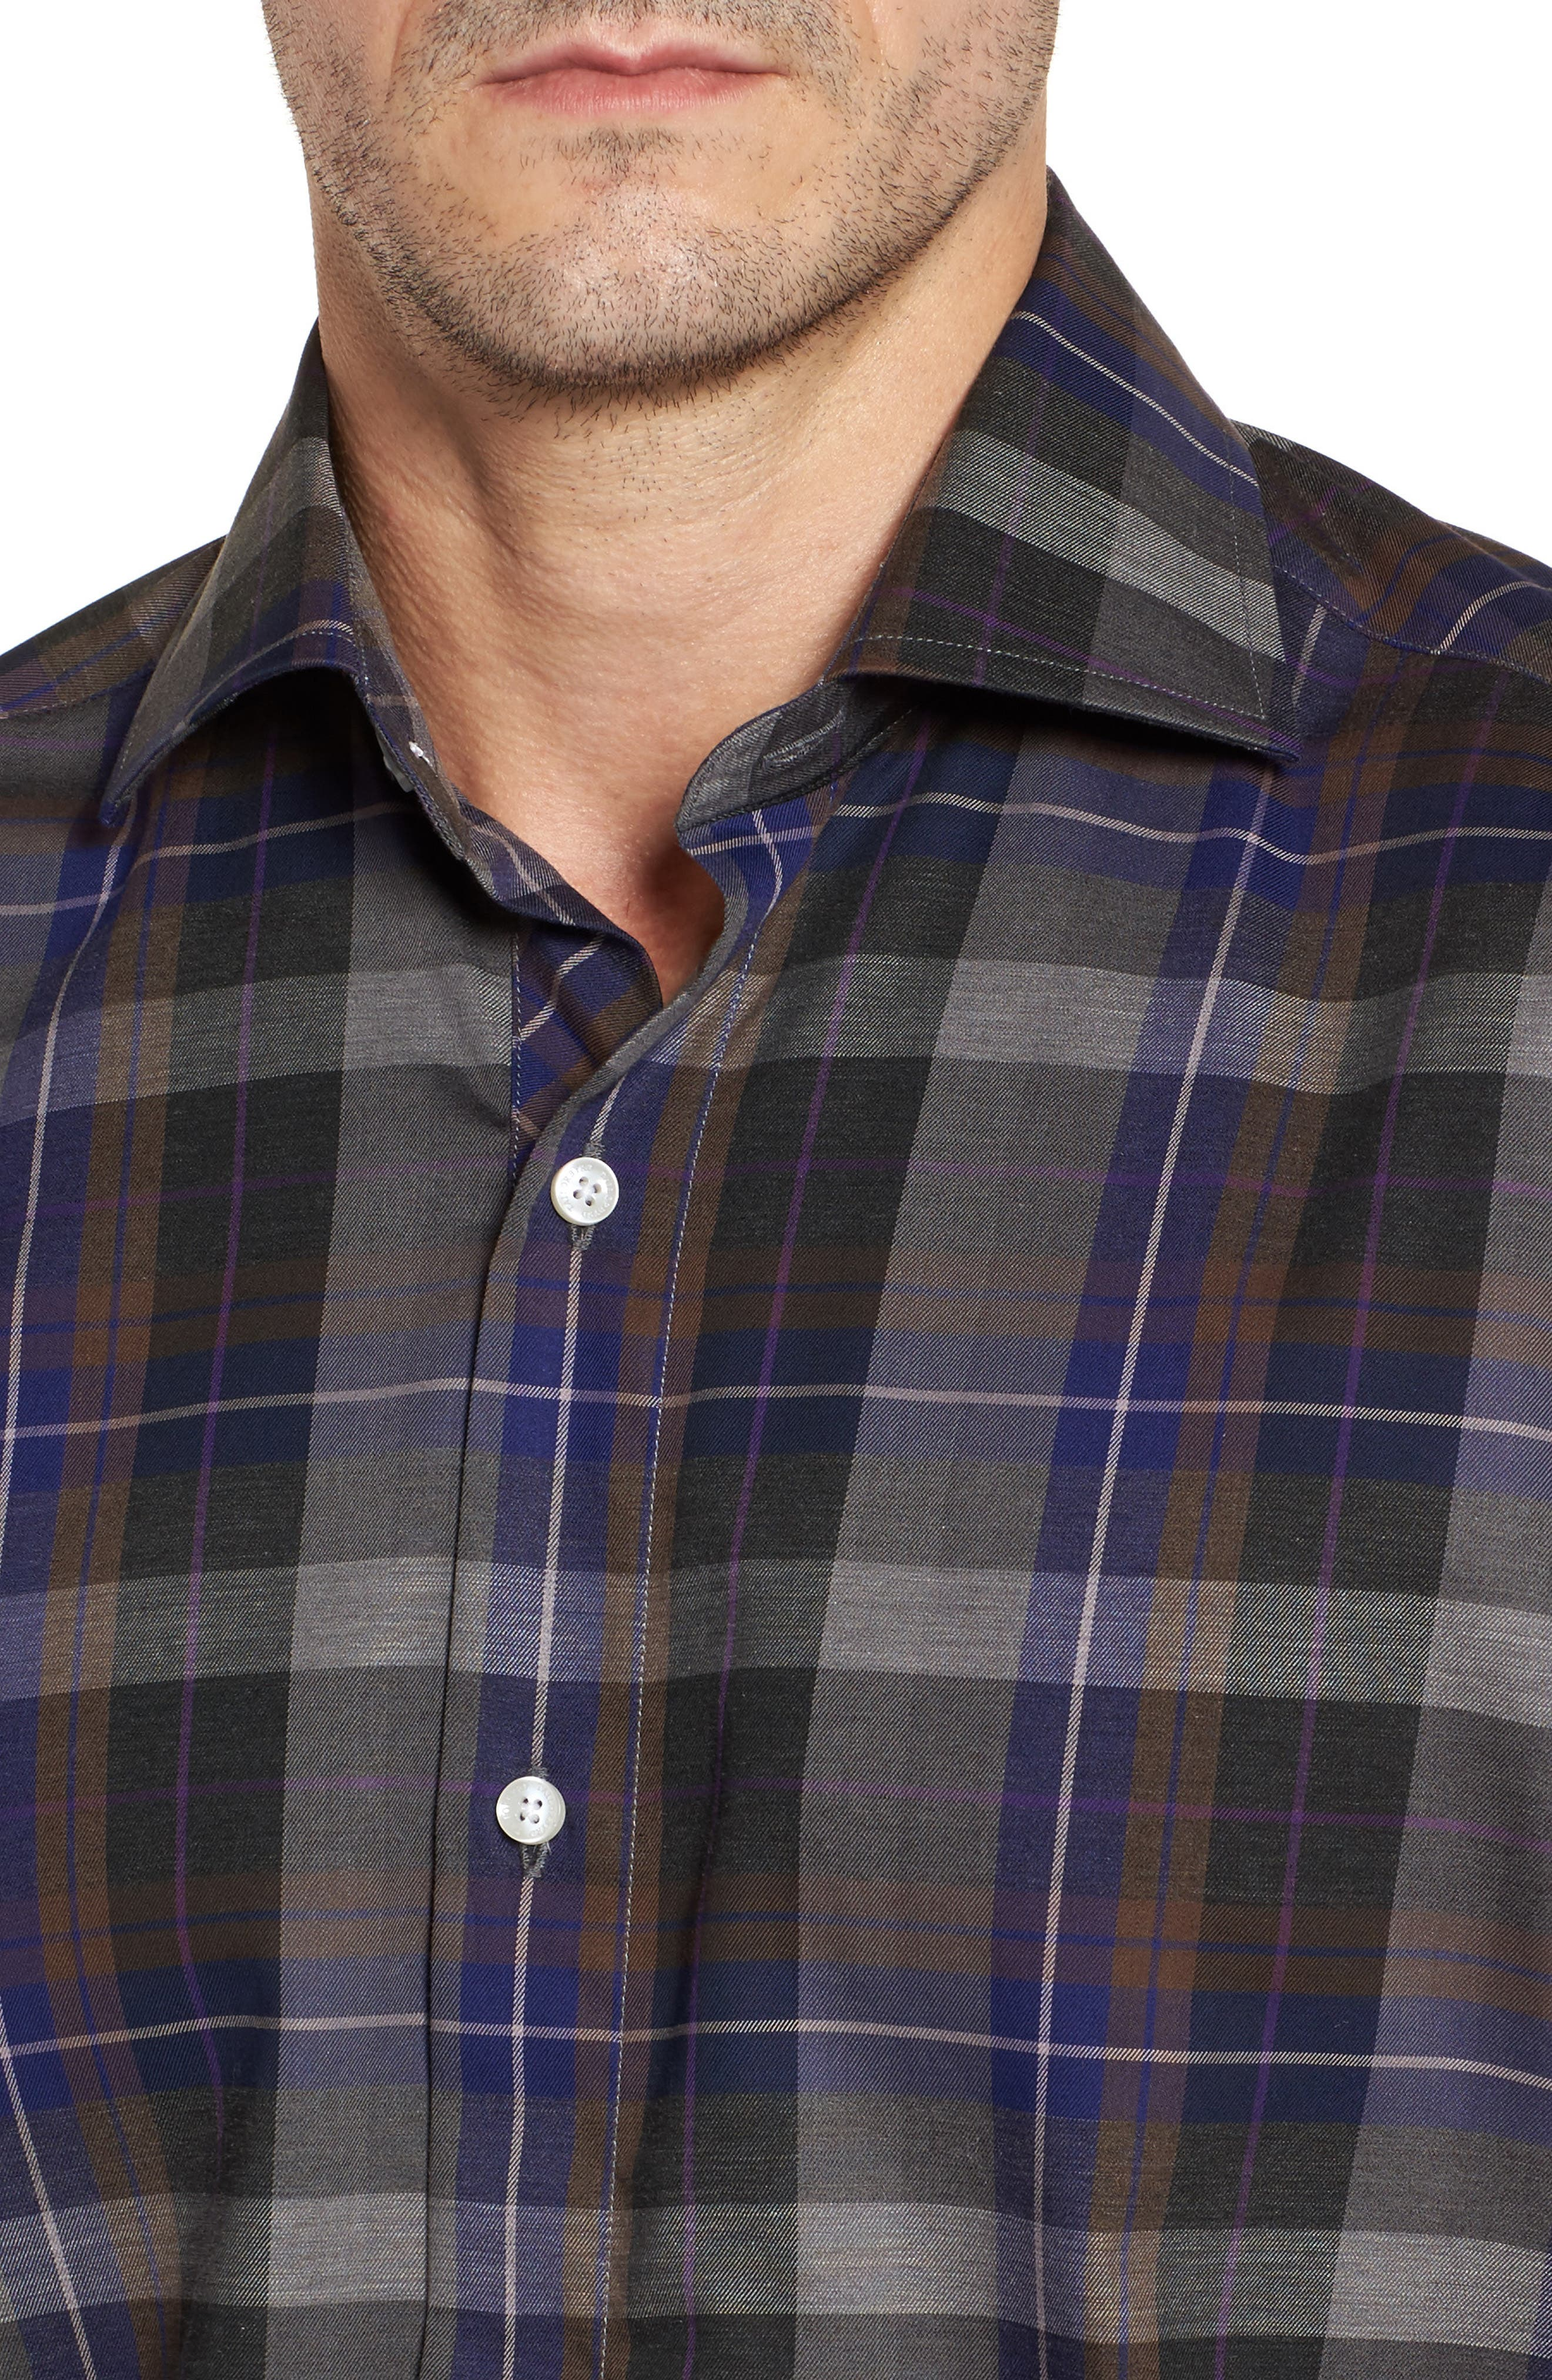 Cullen Plaid Twill Sport Shirt,                             Alternate thumbnail 4, color,                             Blue